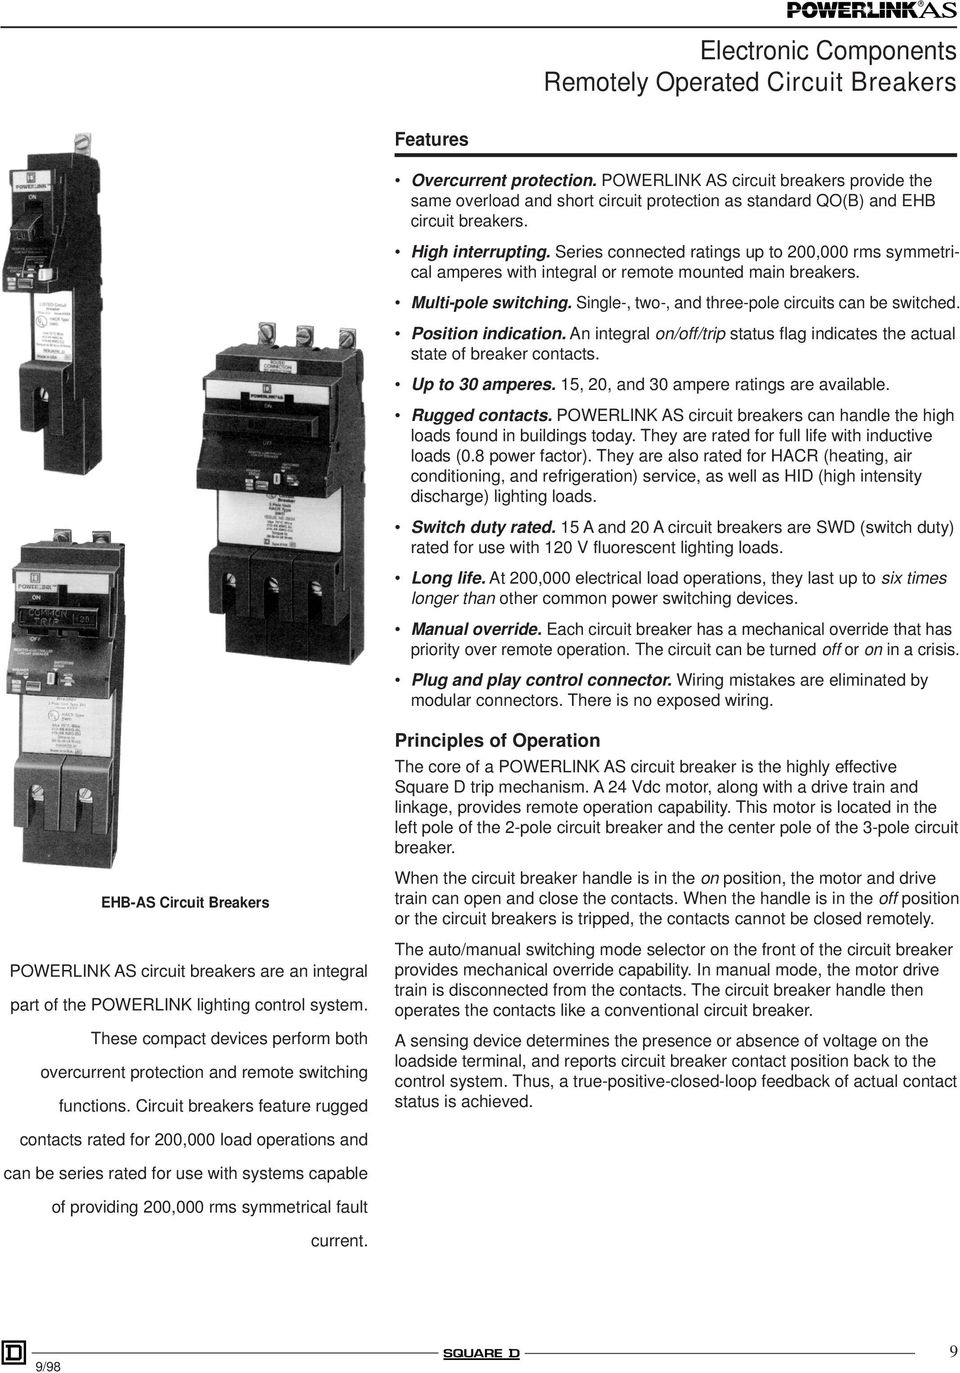 Lighting Control System Catalog Class Pdf The Circuit Breaker Is A Switch Designed To Automatically Shut Off Series Connected Ratings Up 200000 Rms Symmetrical Amperes With Integral Or Remote Mounted Main Breakers